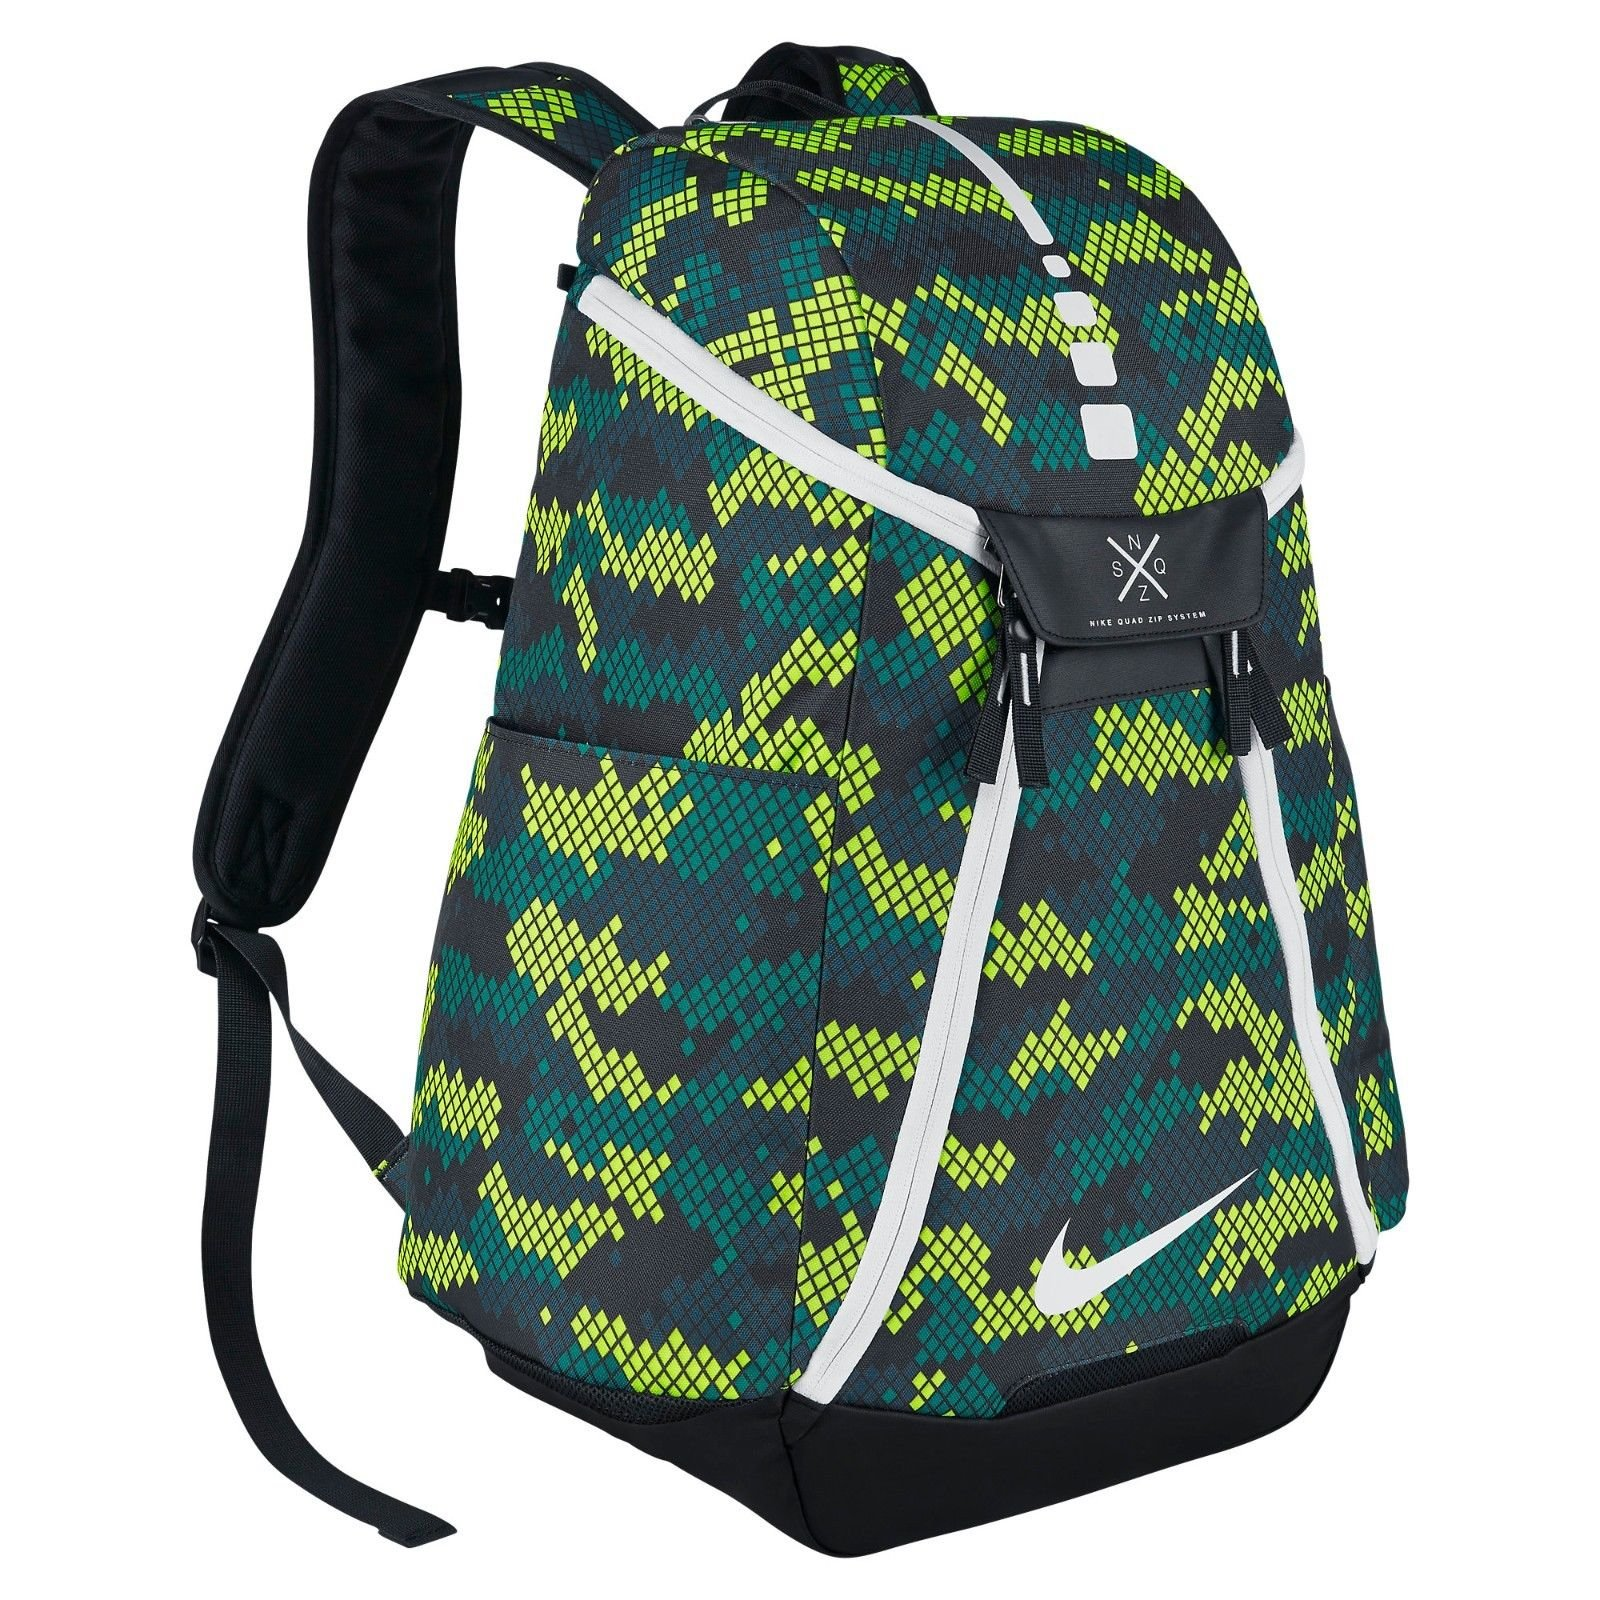 Nike Hoops Elite Max Air Team Backpack Bag in Rio Teal/Black/White BA5260-351